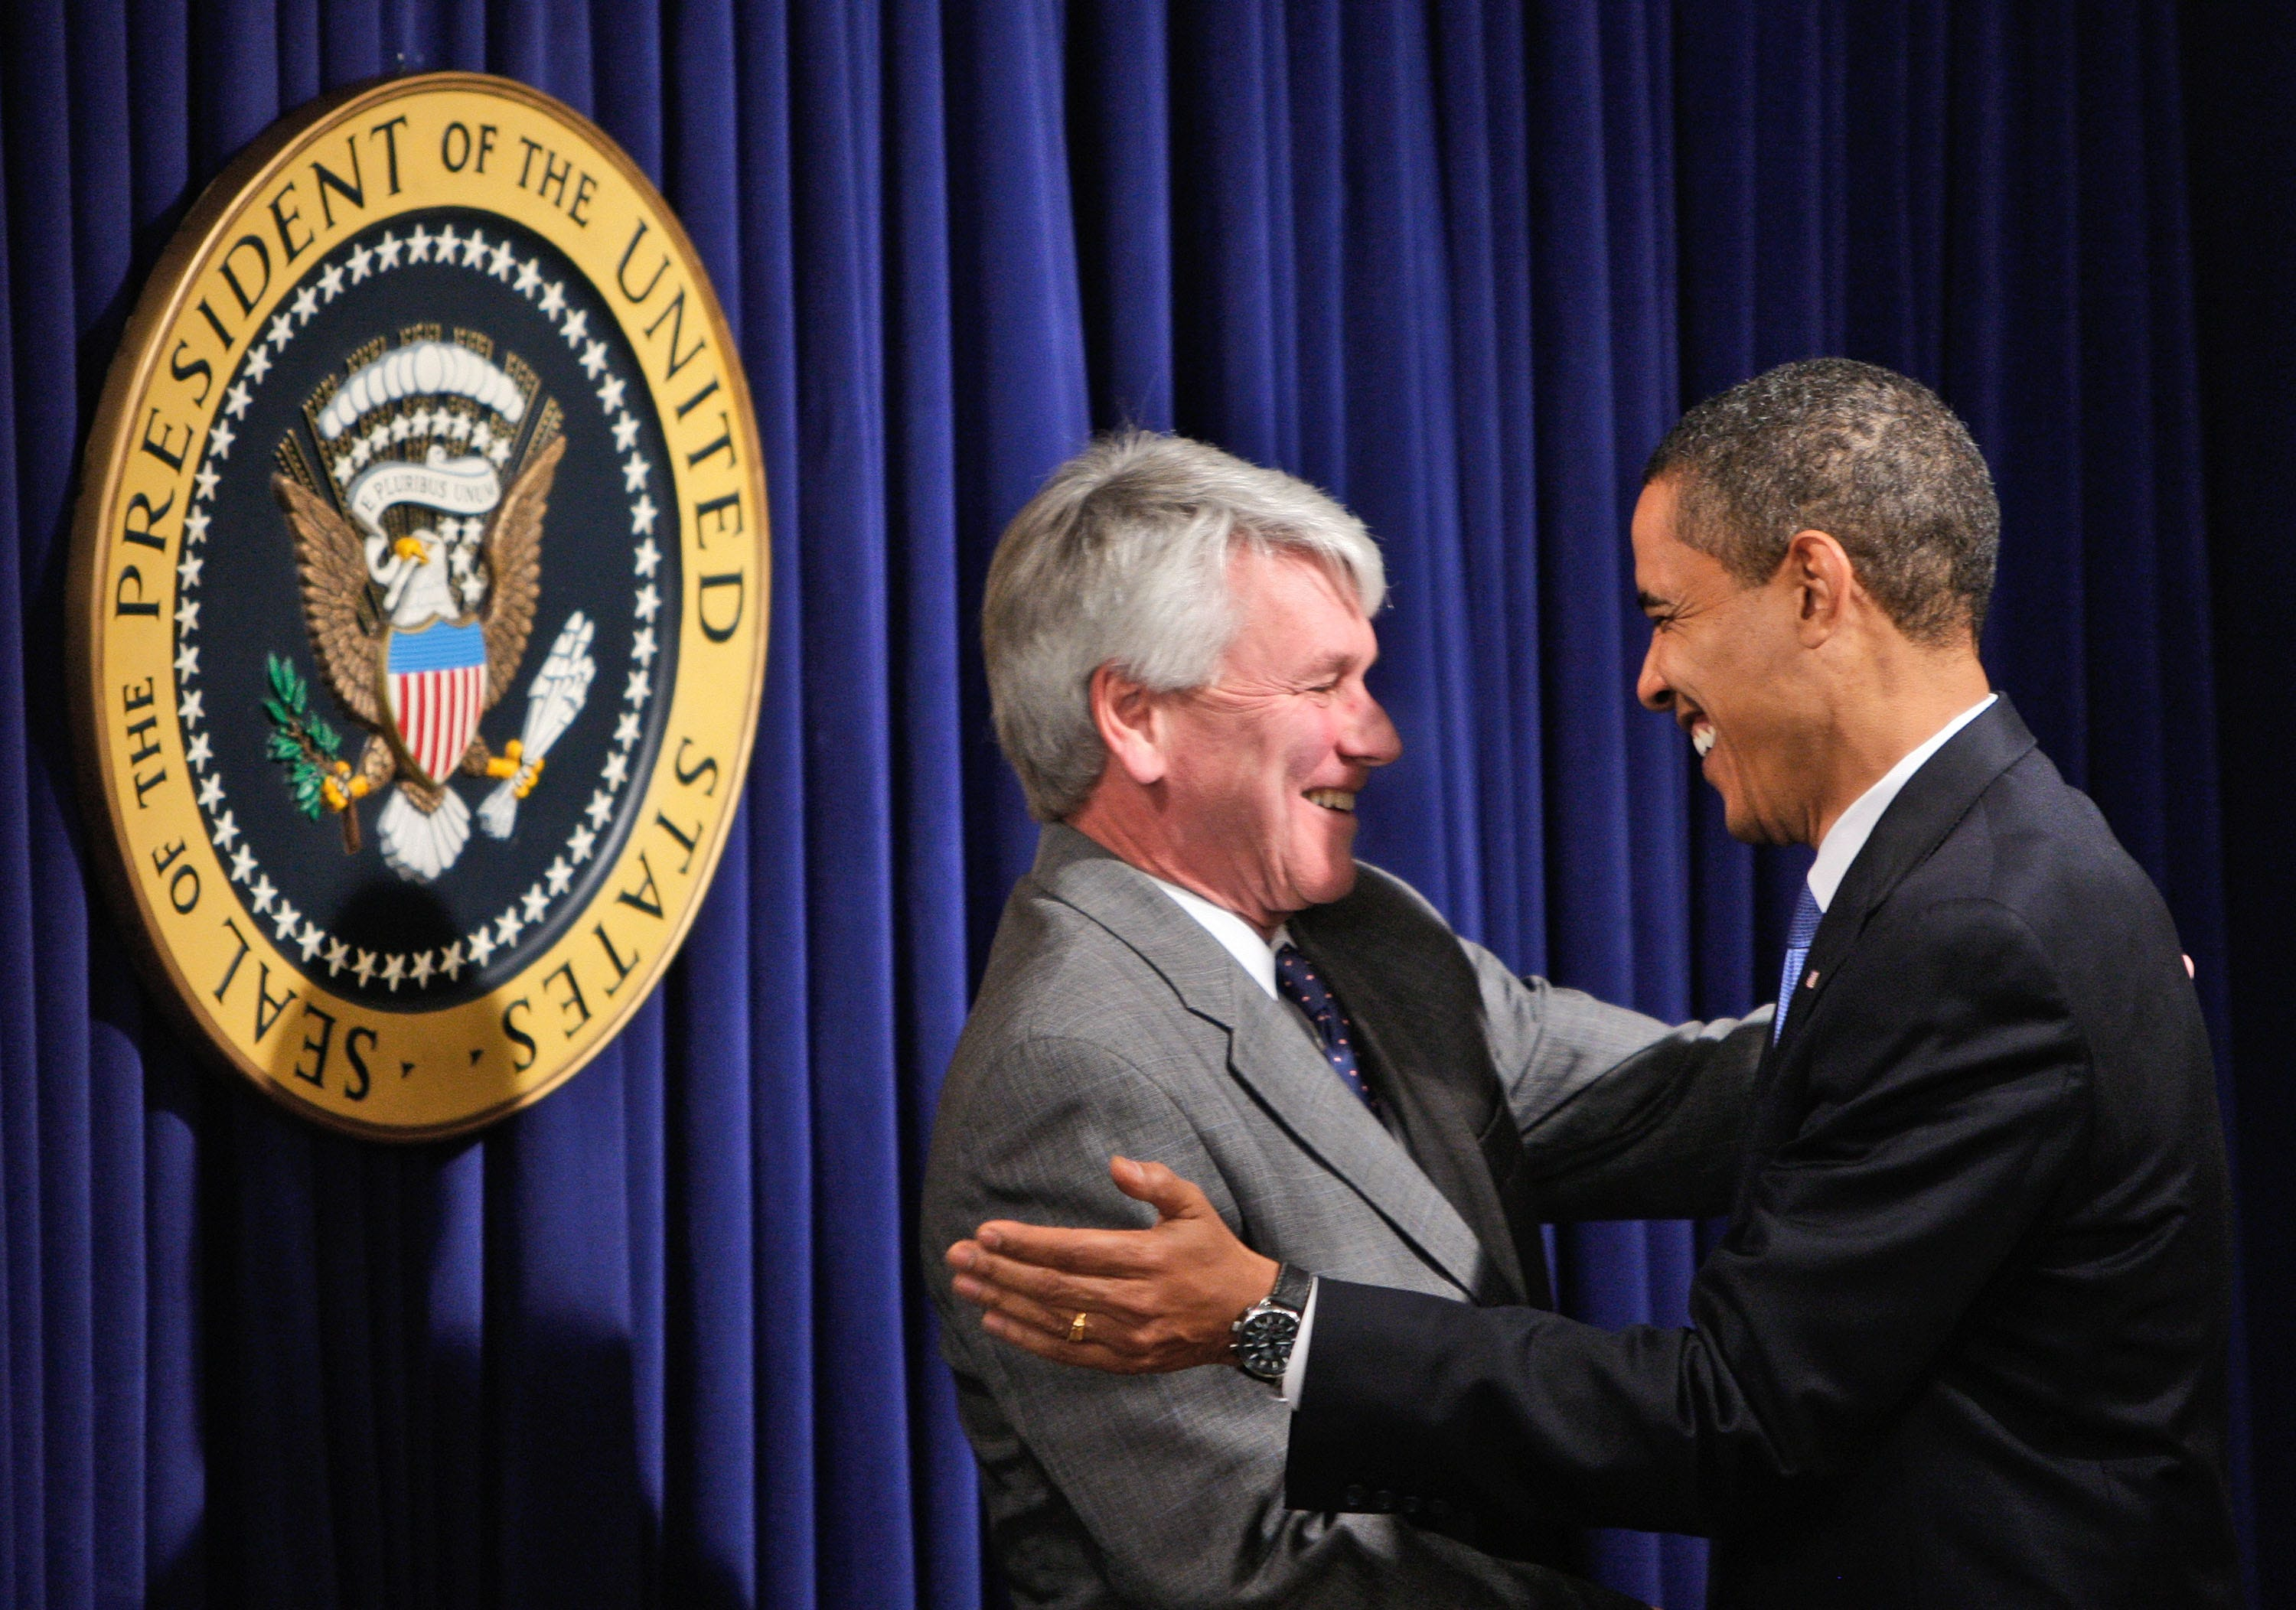 Ex-Obama White House counsel Greg Craig expects charges in lobbying investigation, lawyers say